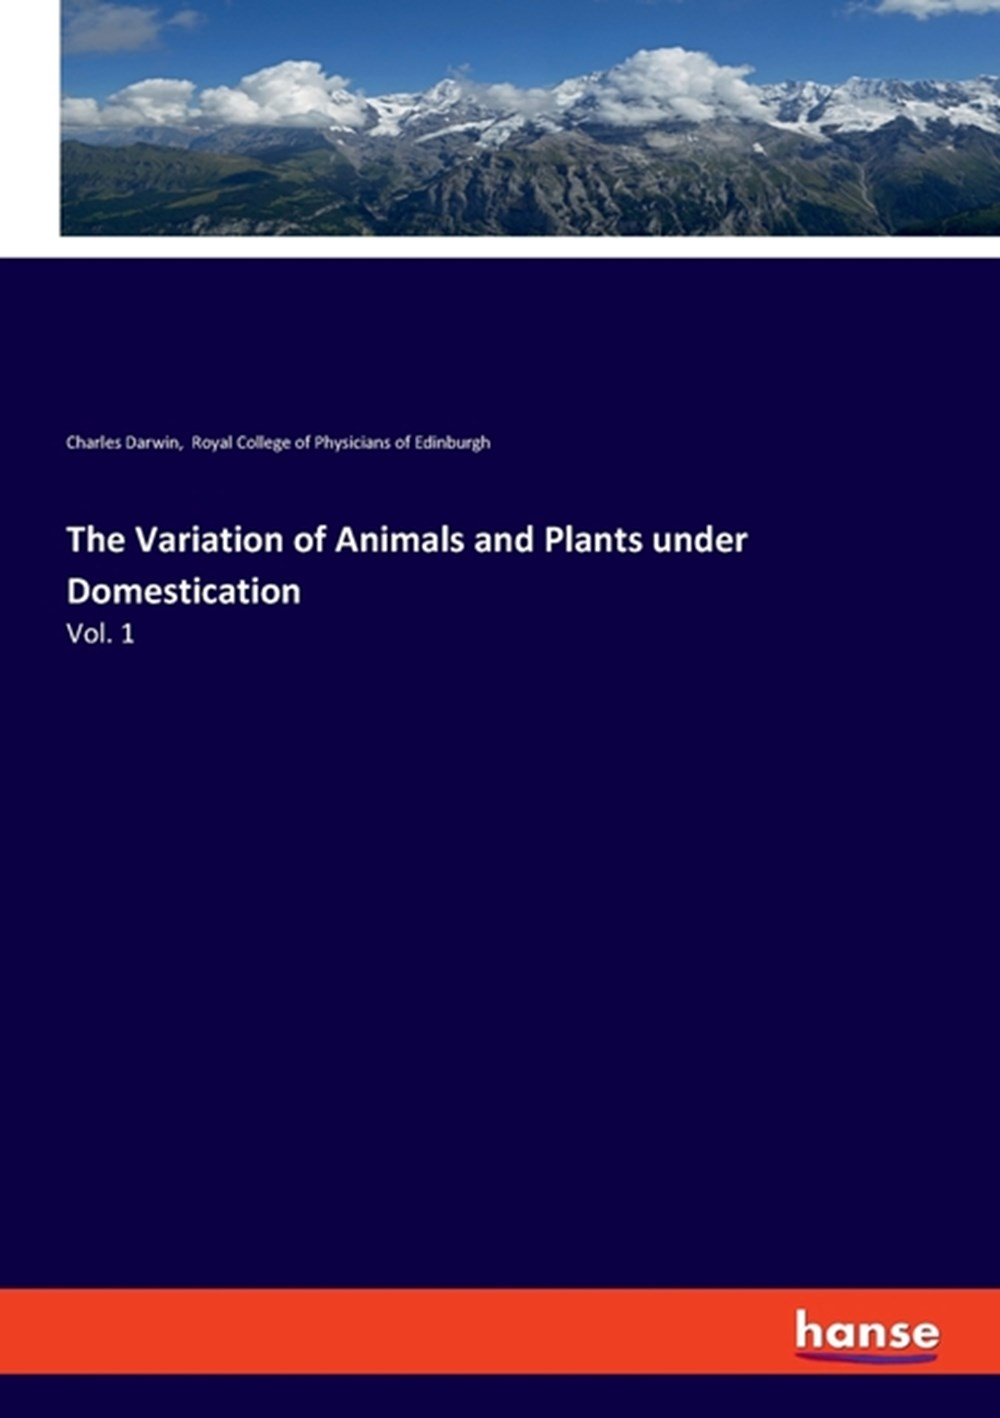 Variation of Animals and Plants under Domestication Vol. 1